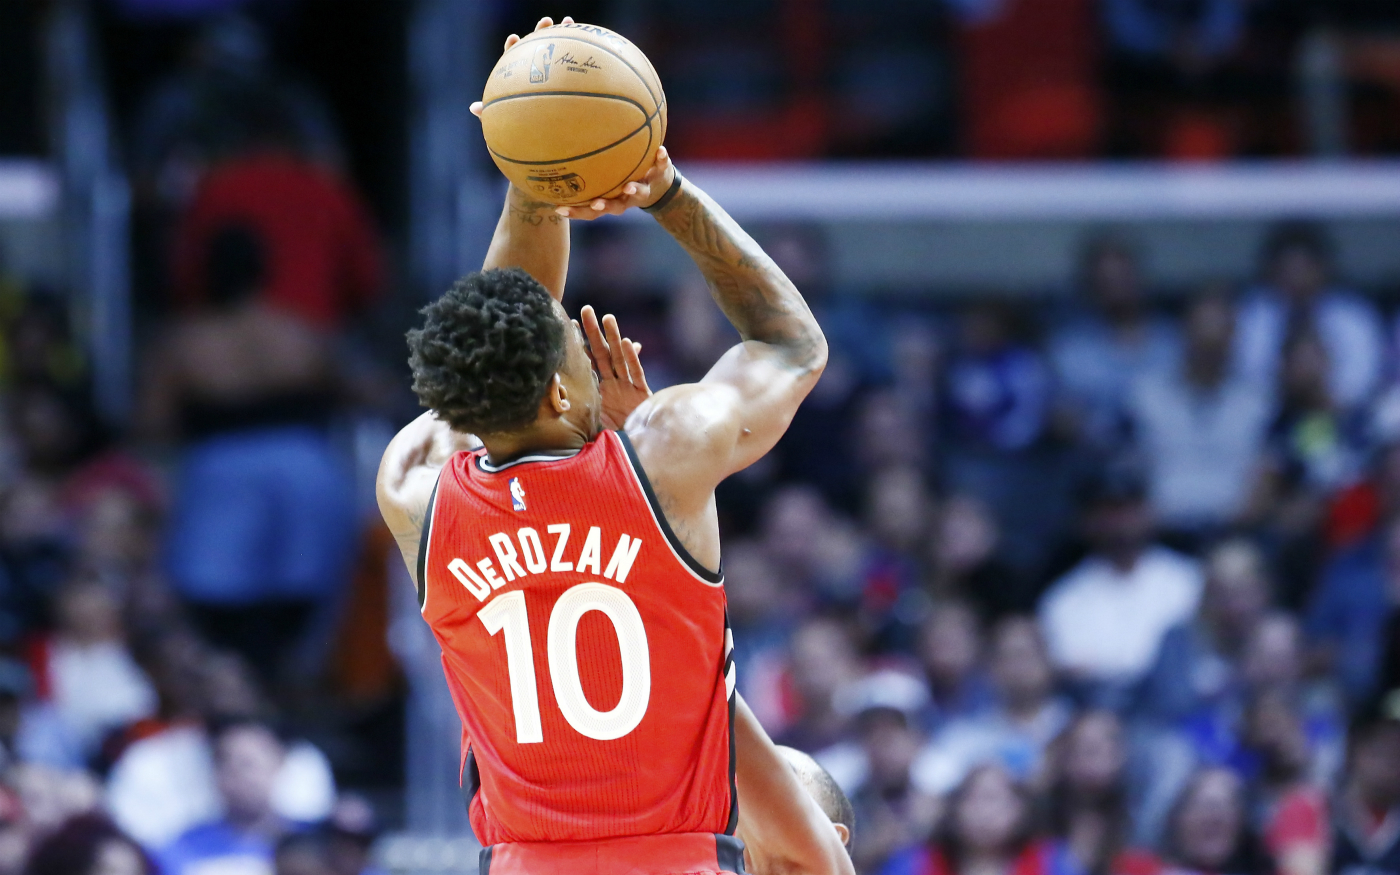 Boston tombe devant les 43 points de DeMar DeRozan